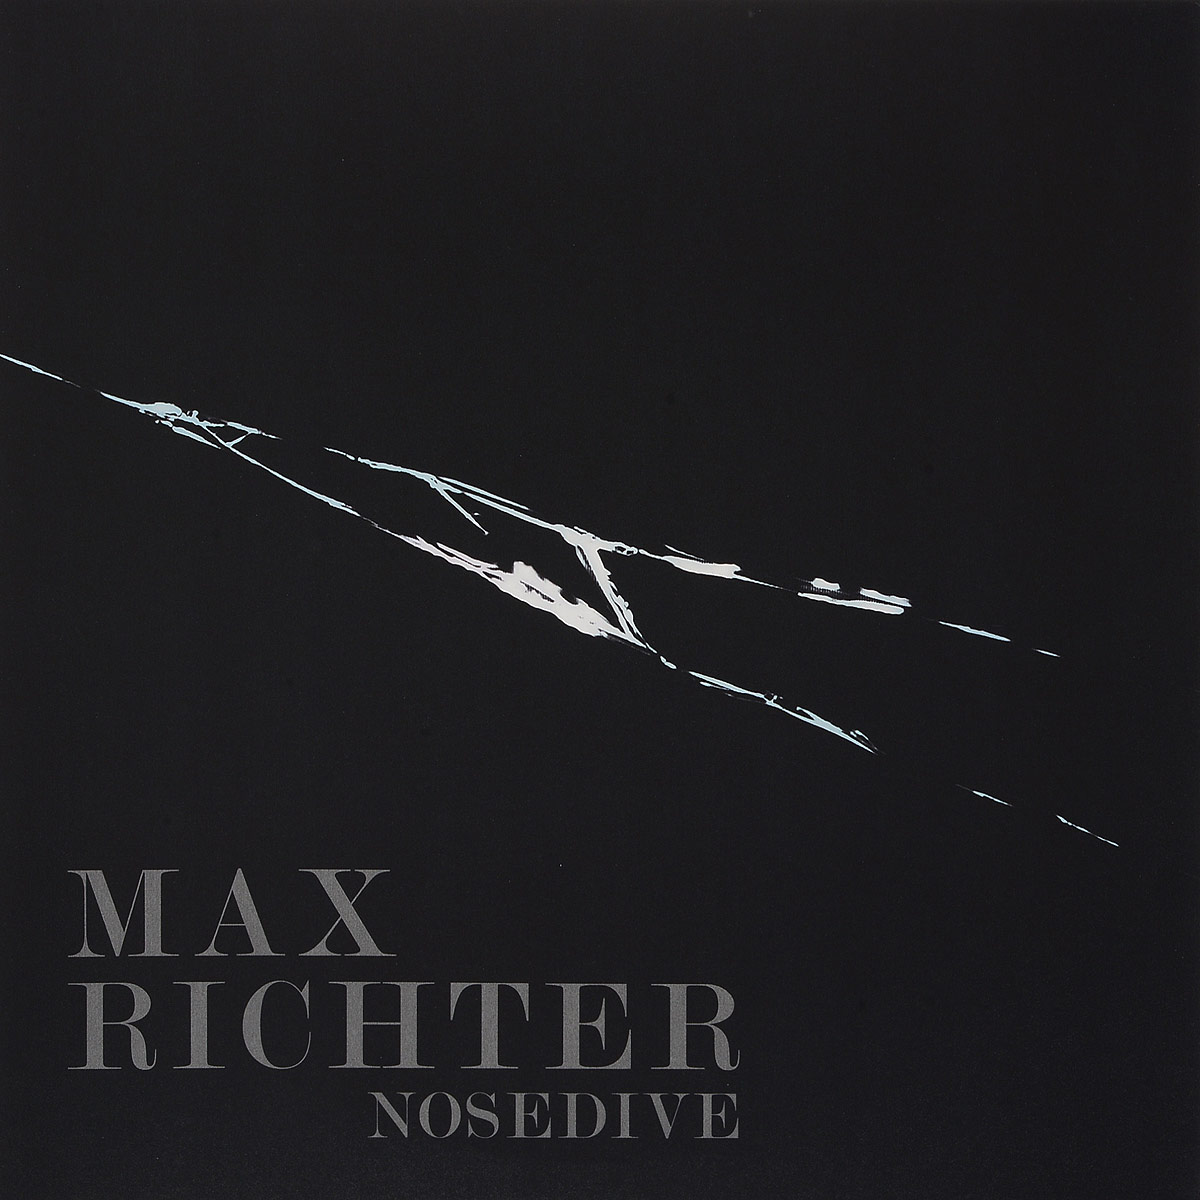 Макс Рихтер Max Richter. Nosedive (LP) max richter max richter sleep remixed